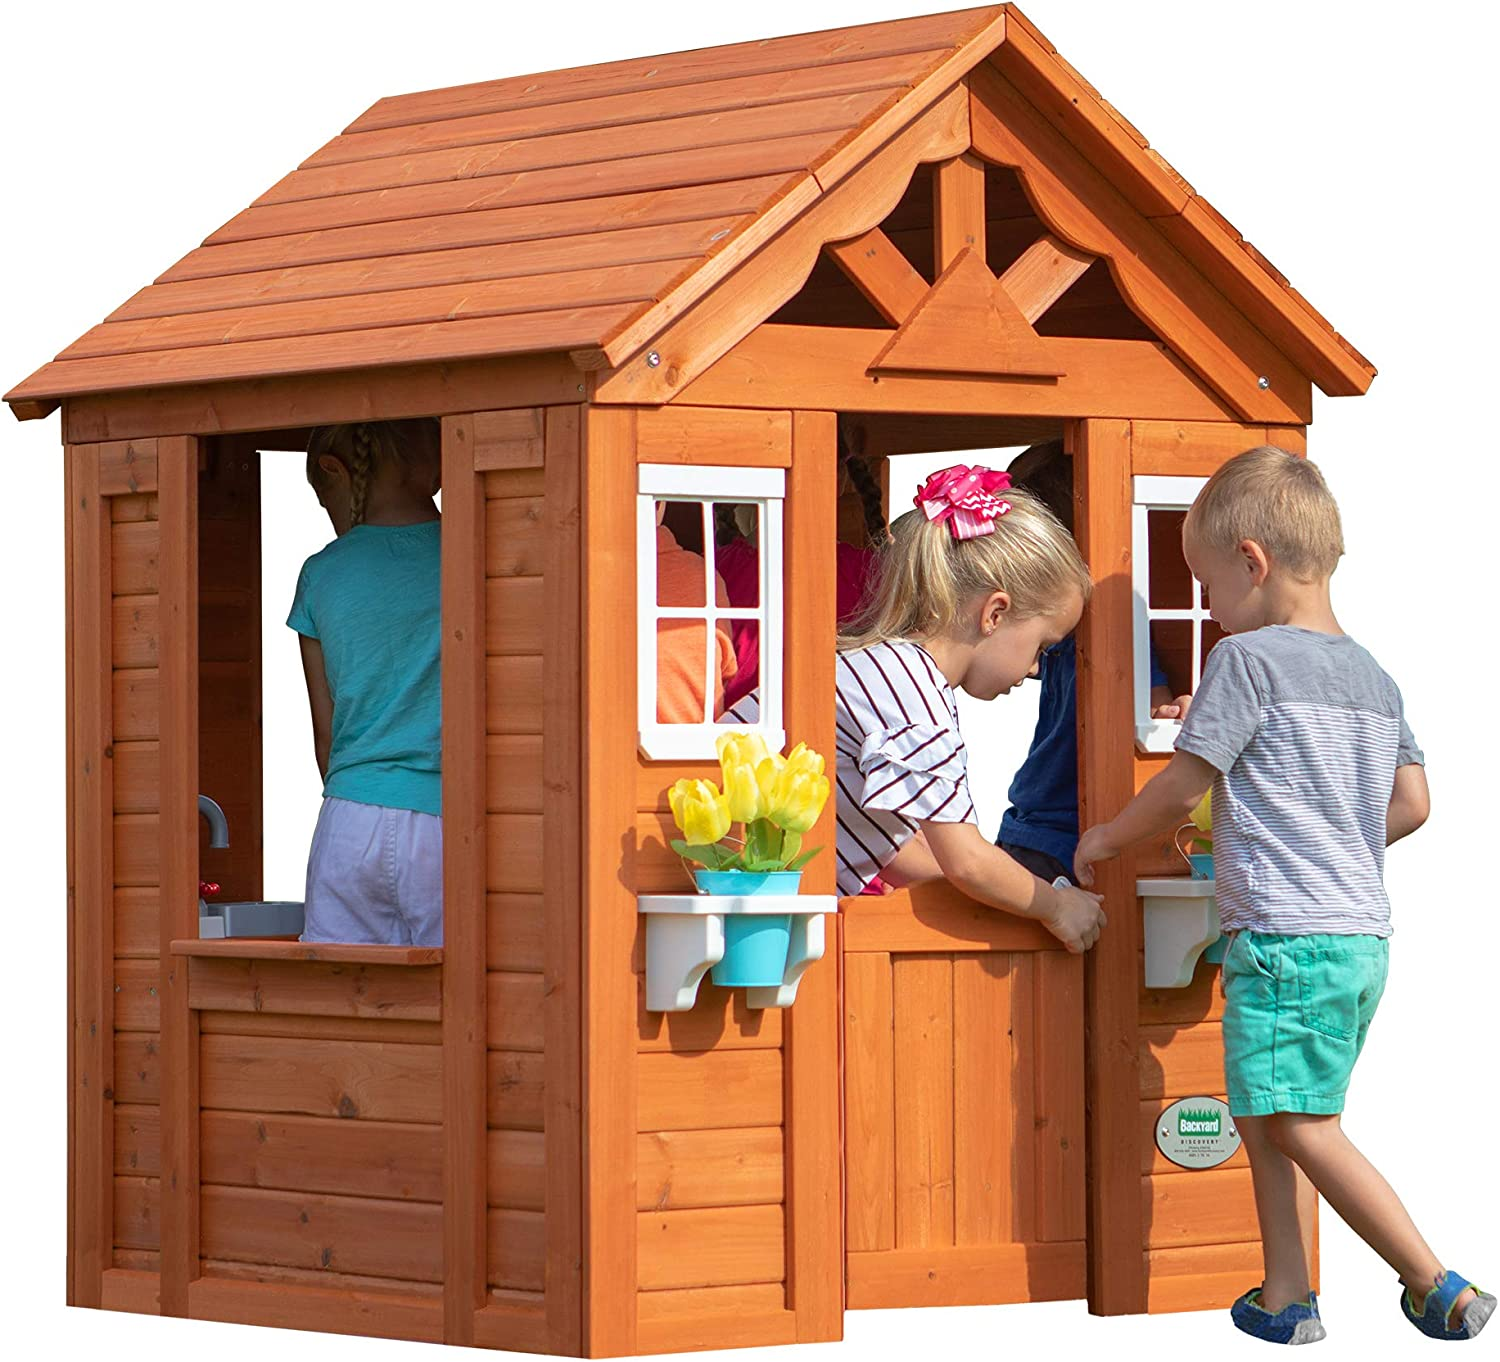 Top 11 Best Kids Outdoor Playhouses in 2020 Reviews 1